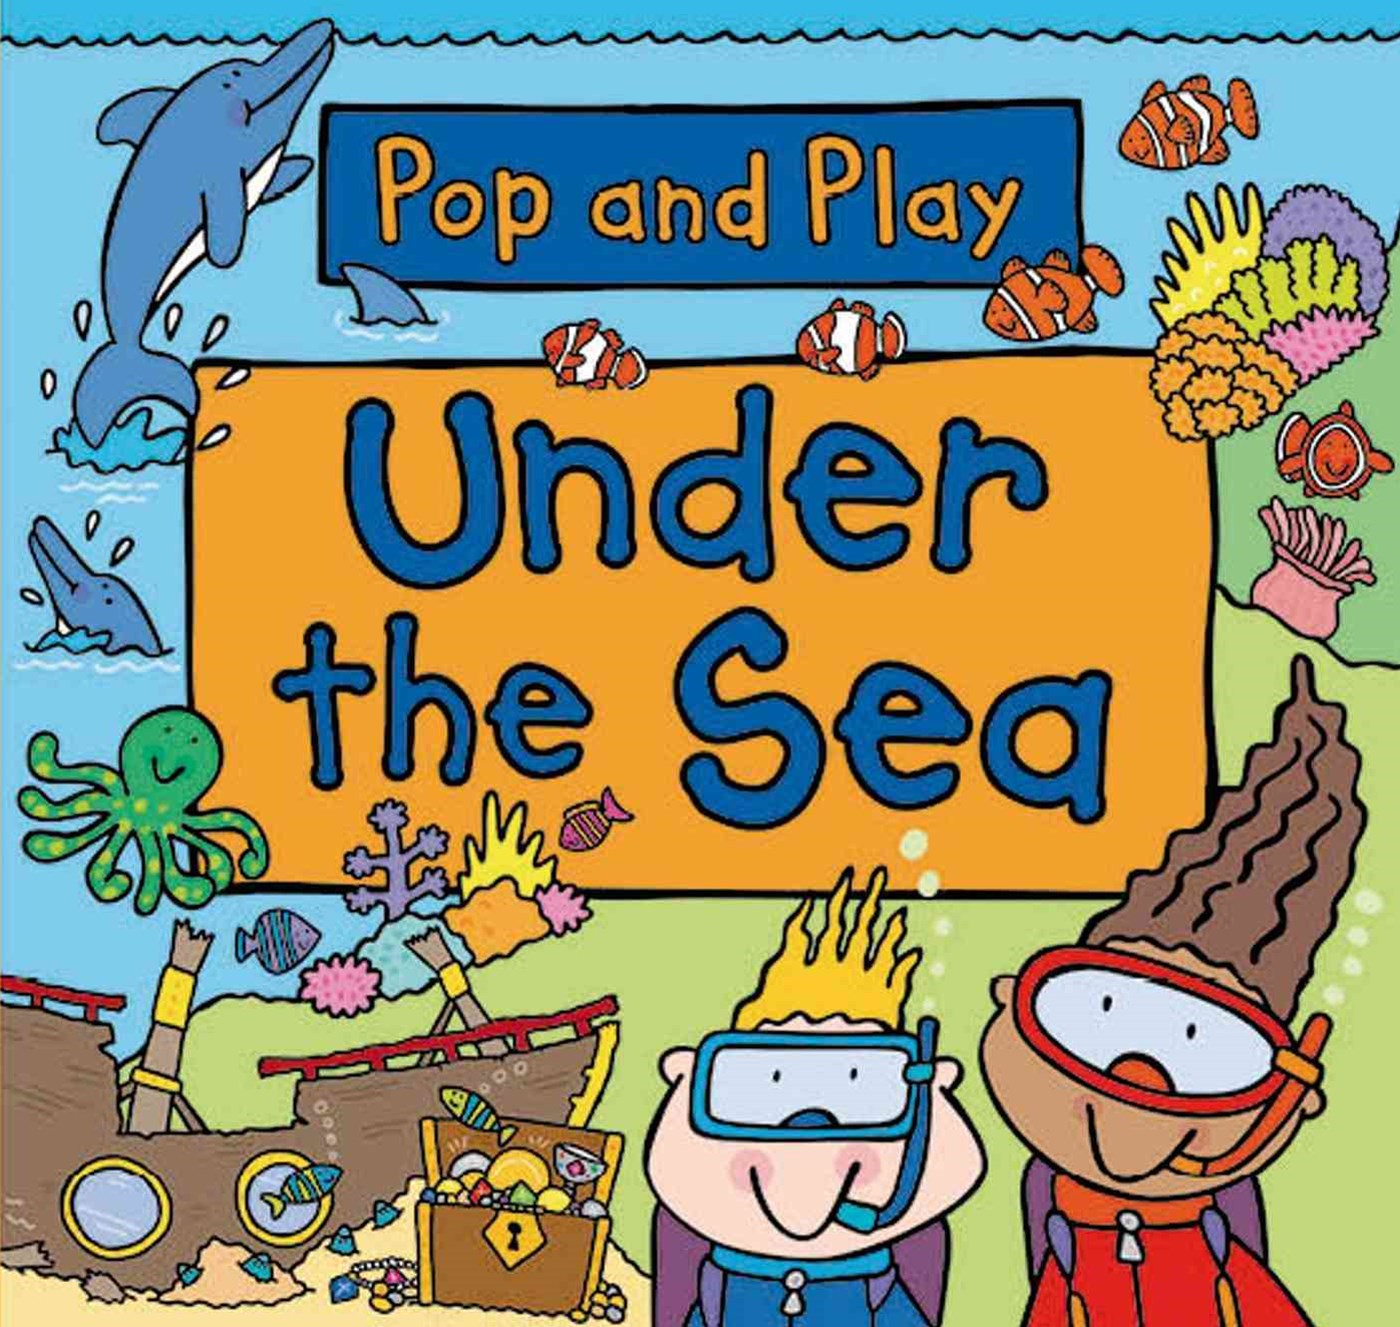 Pop and Play: under the Sea